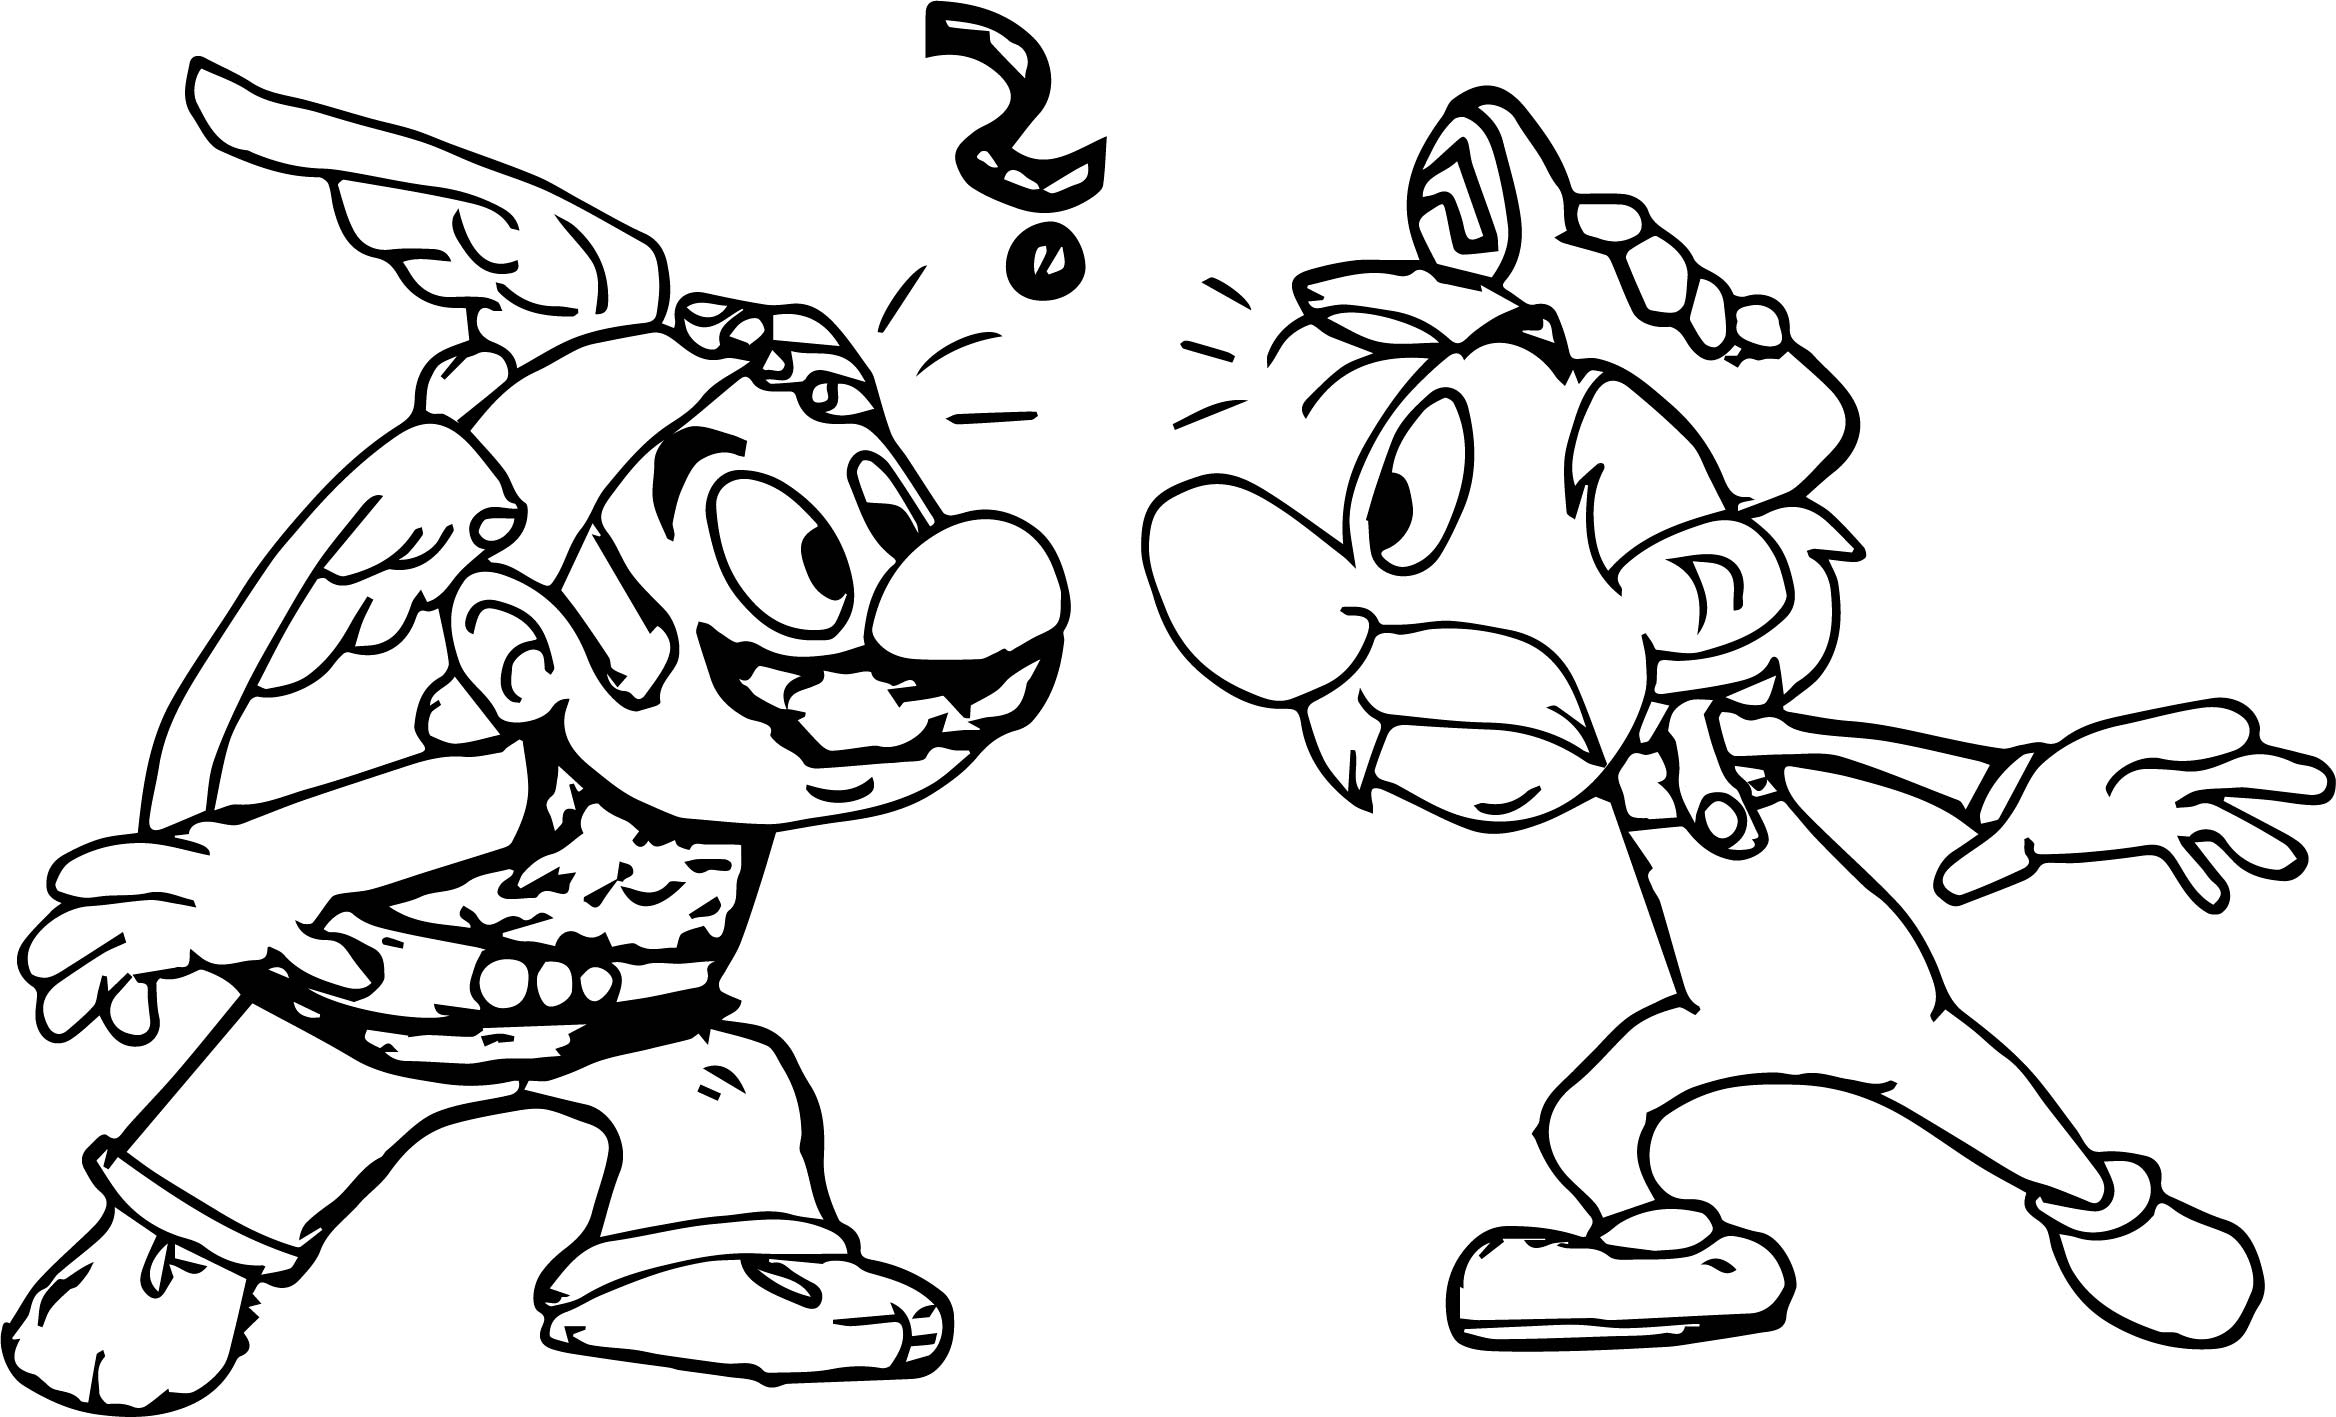 mario the gaul and asterix the plumber coloring page